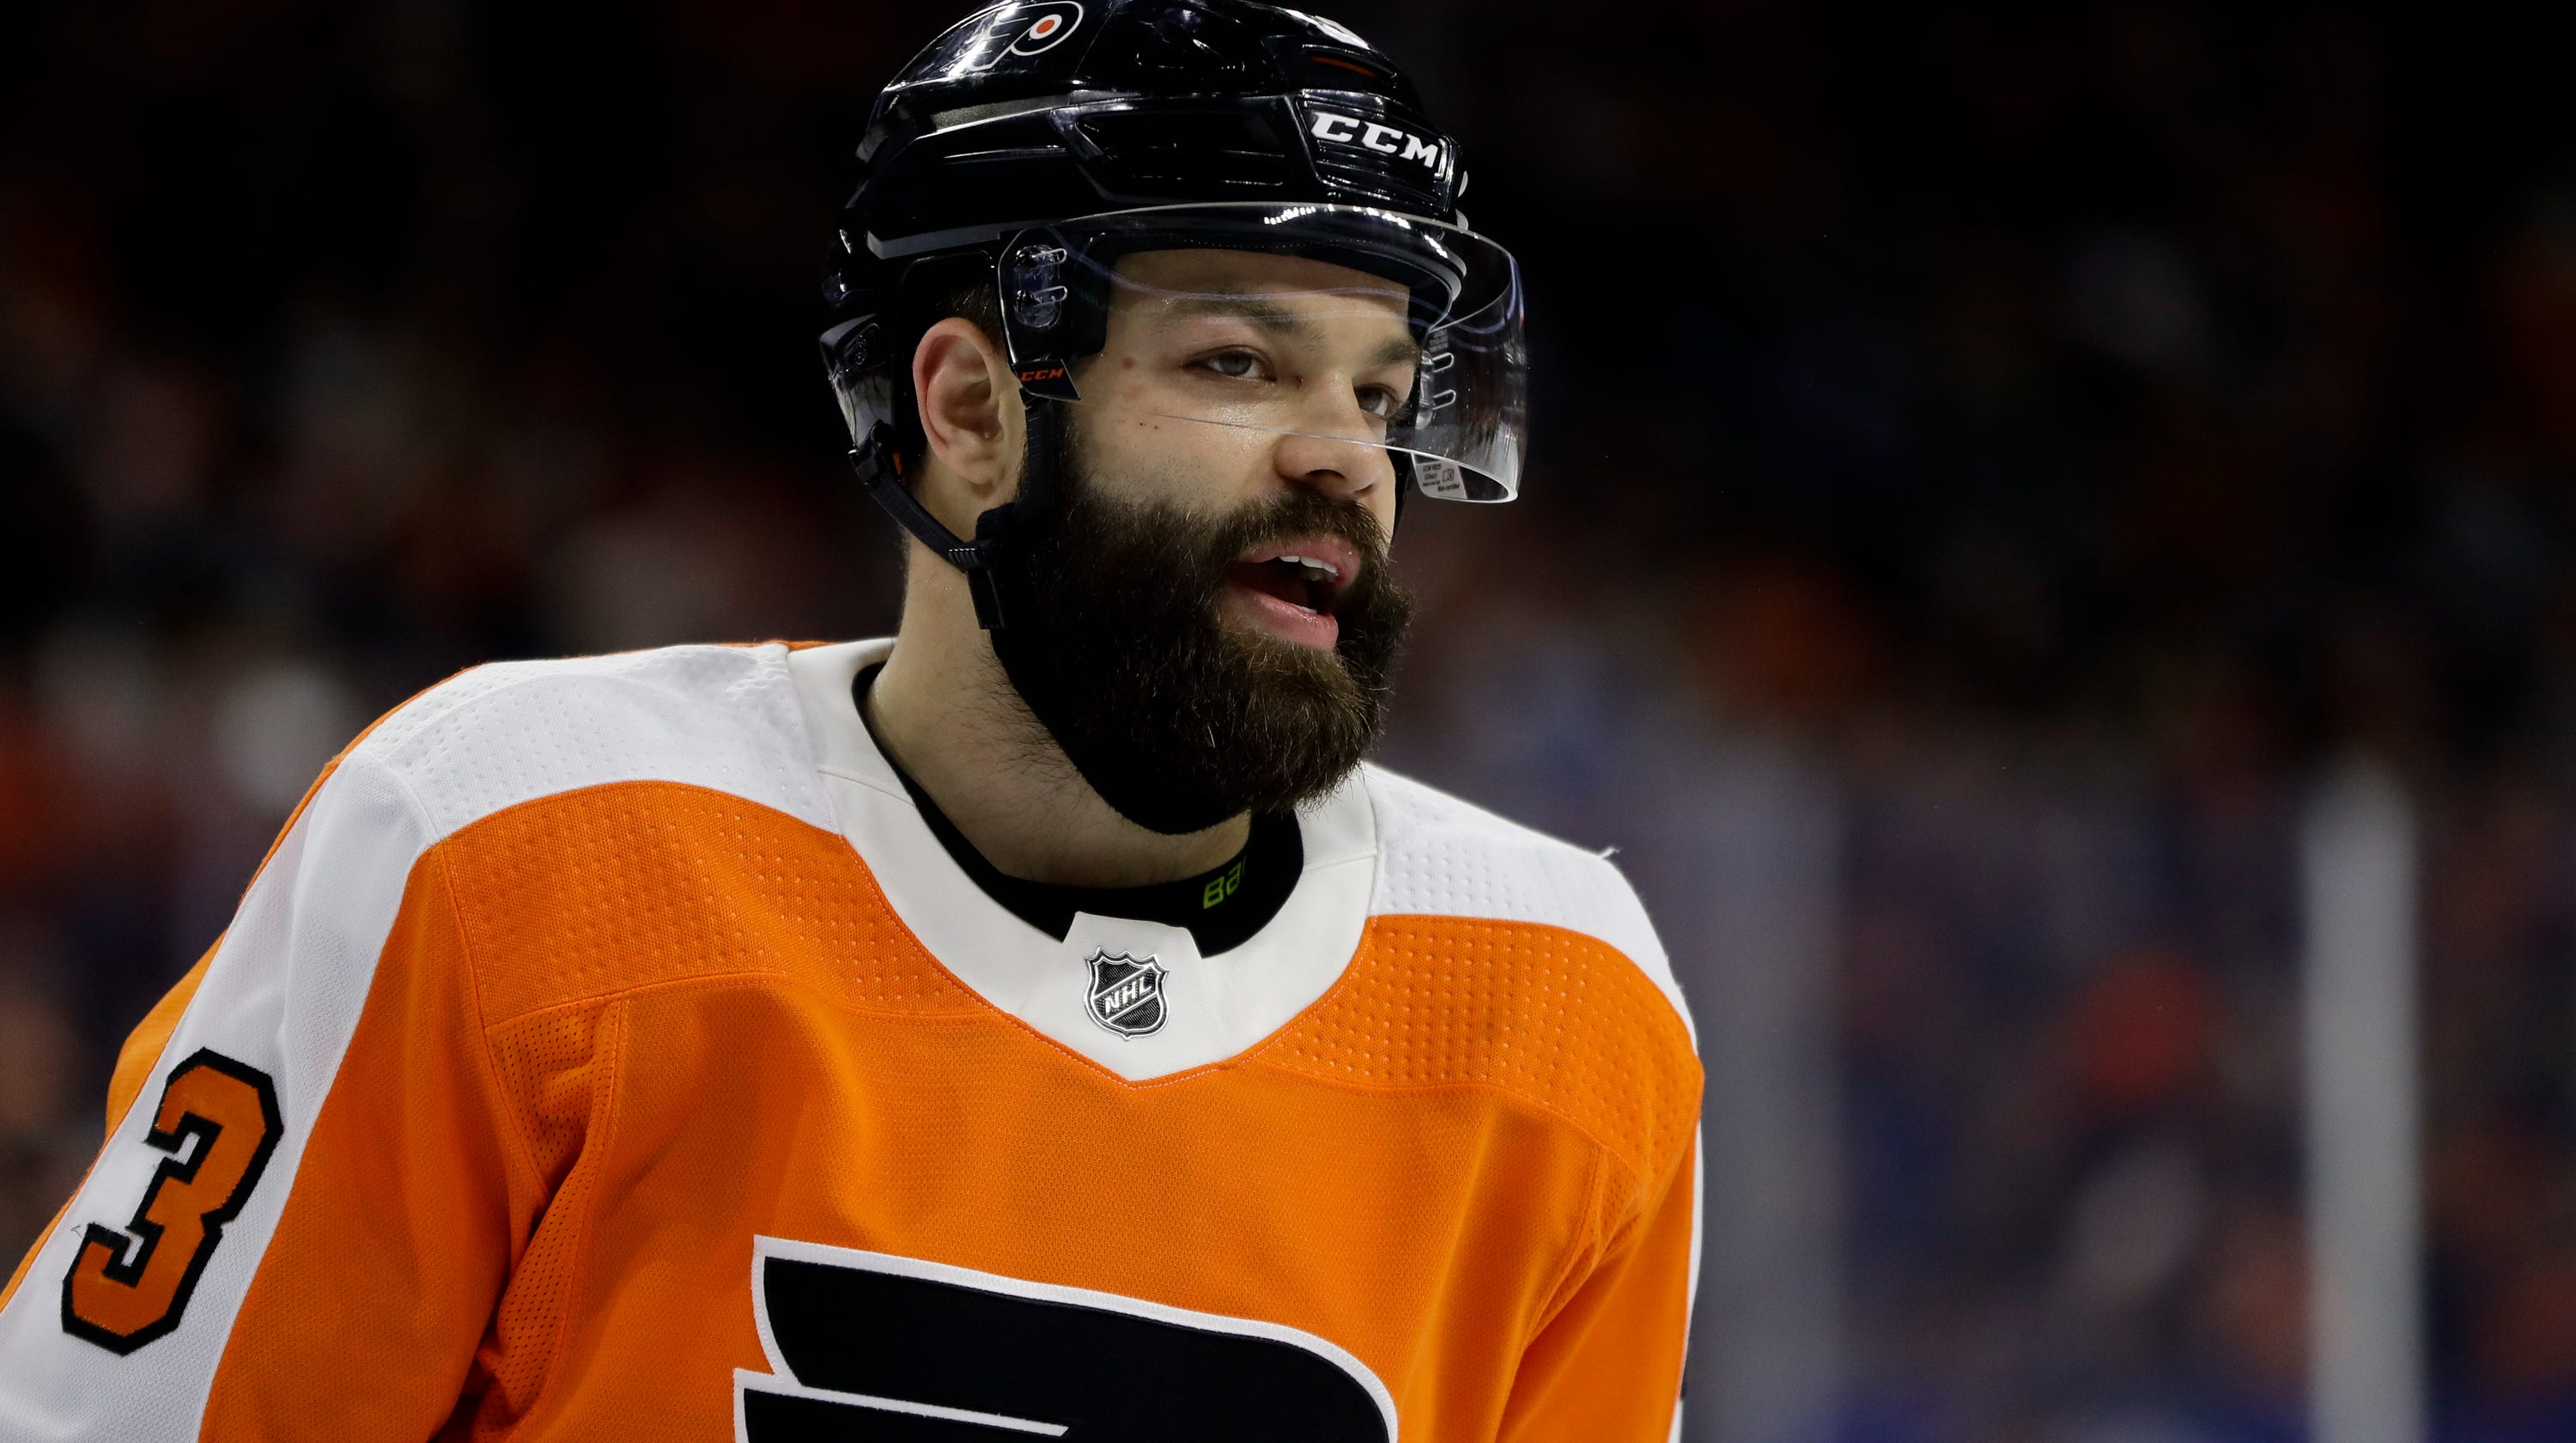 brand new 6004d 274d7 Flyers' Radko Gudas suspended two games for high-sticking